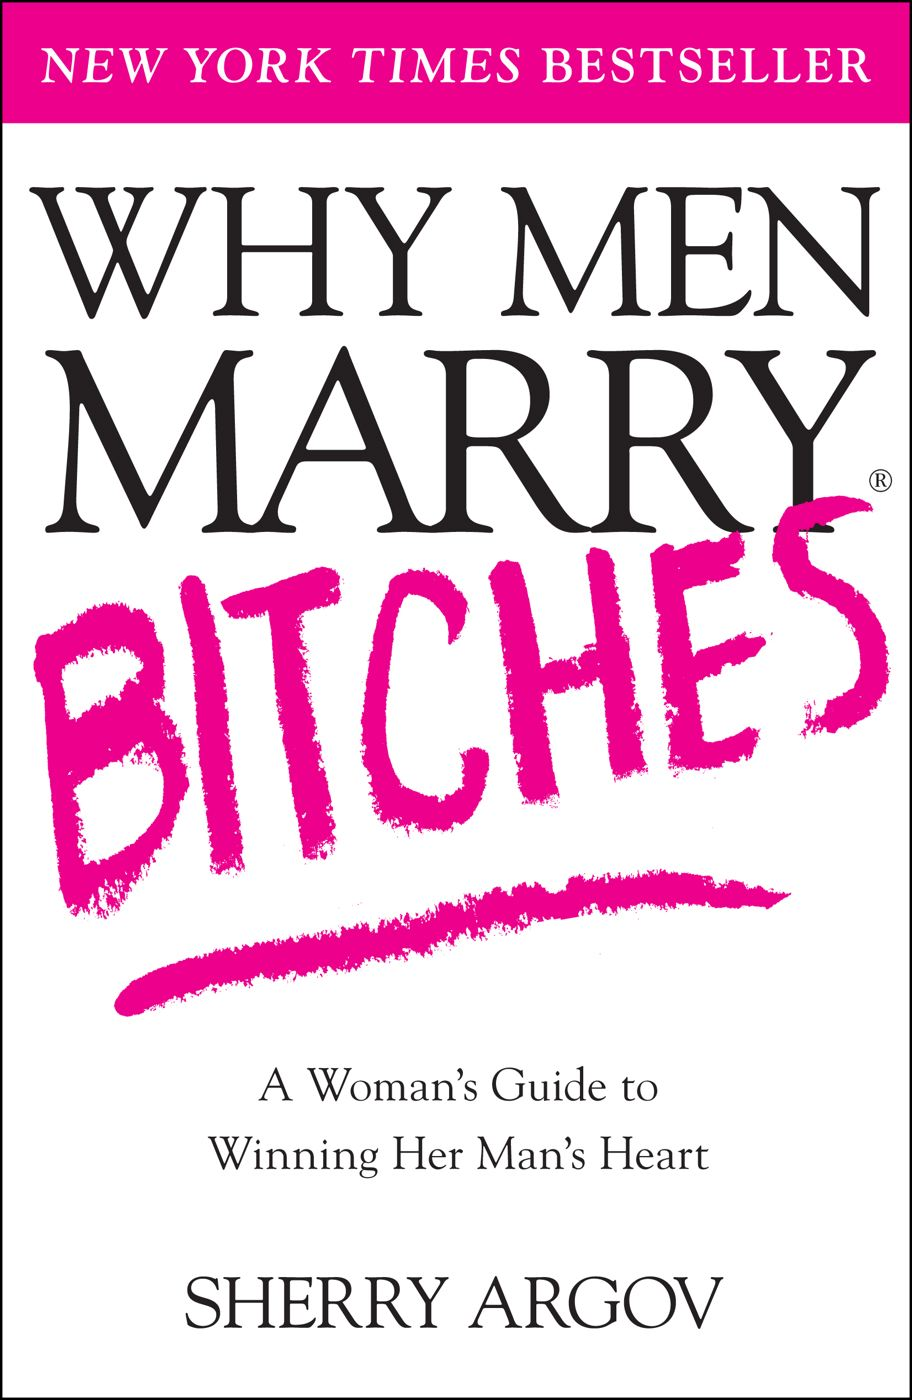 Why Men Marry Bitches By: Sherry Argov